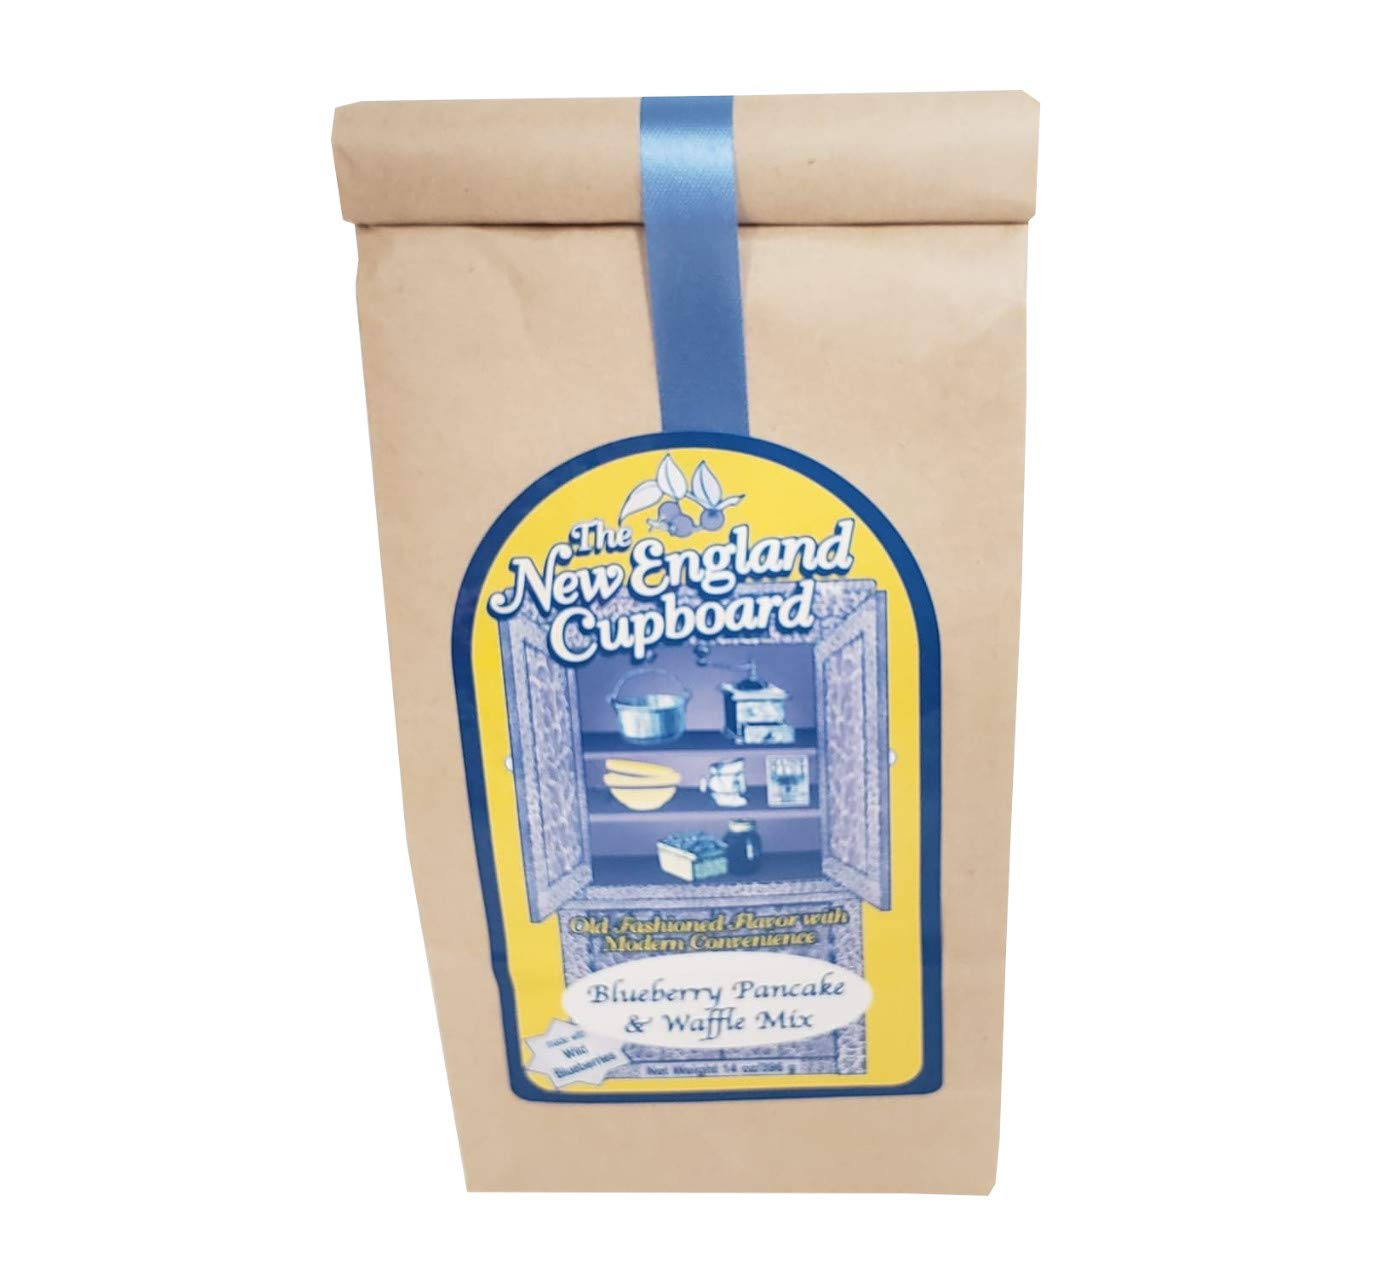 Wild Blueberry Pancake Mix, 14 oz - Made in Maine with Wild Blueberries, Muffins, Waffles